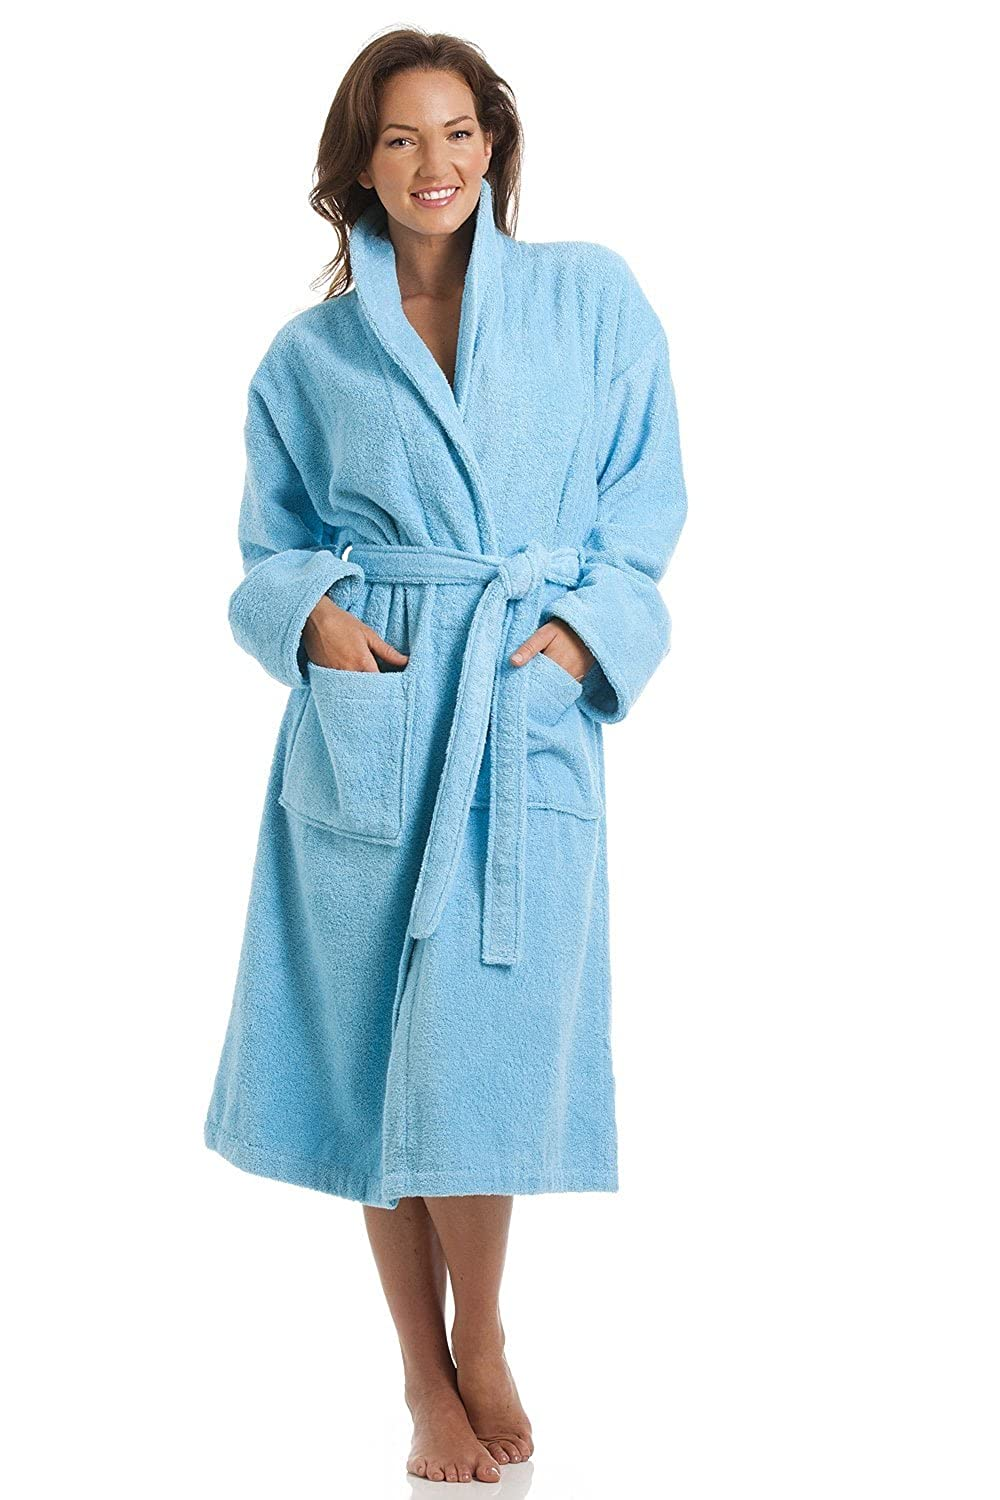 Camille Womens Luxury Blue 100% Cotton Towelling Bath Robe